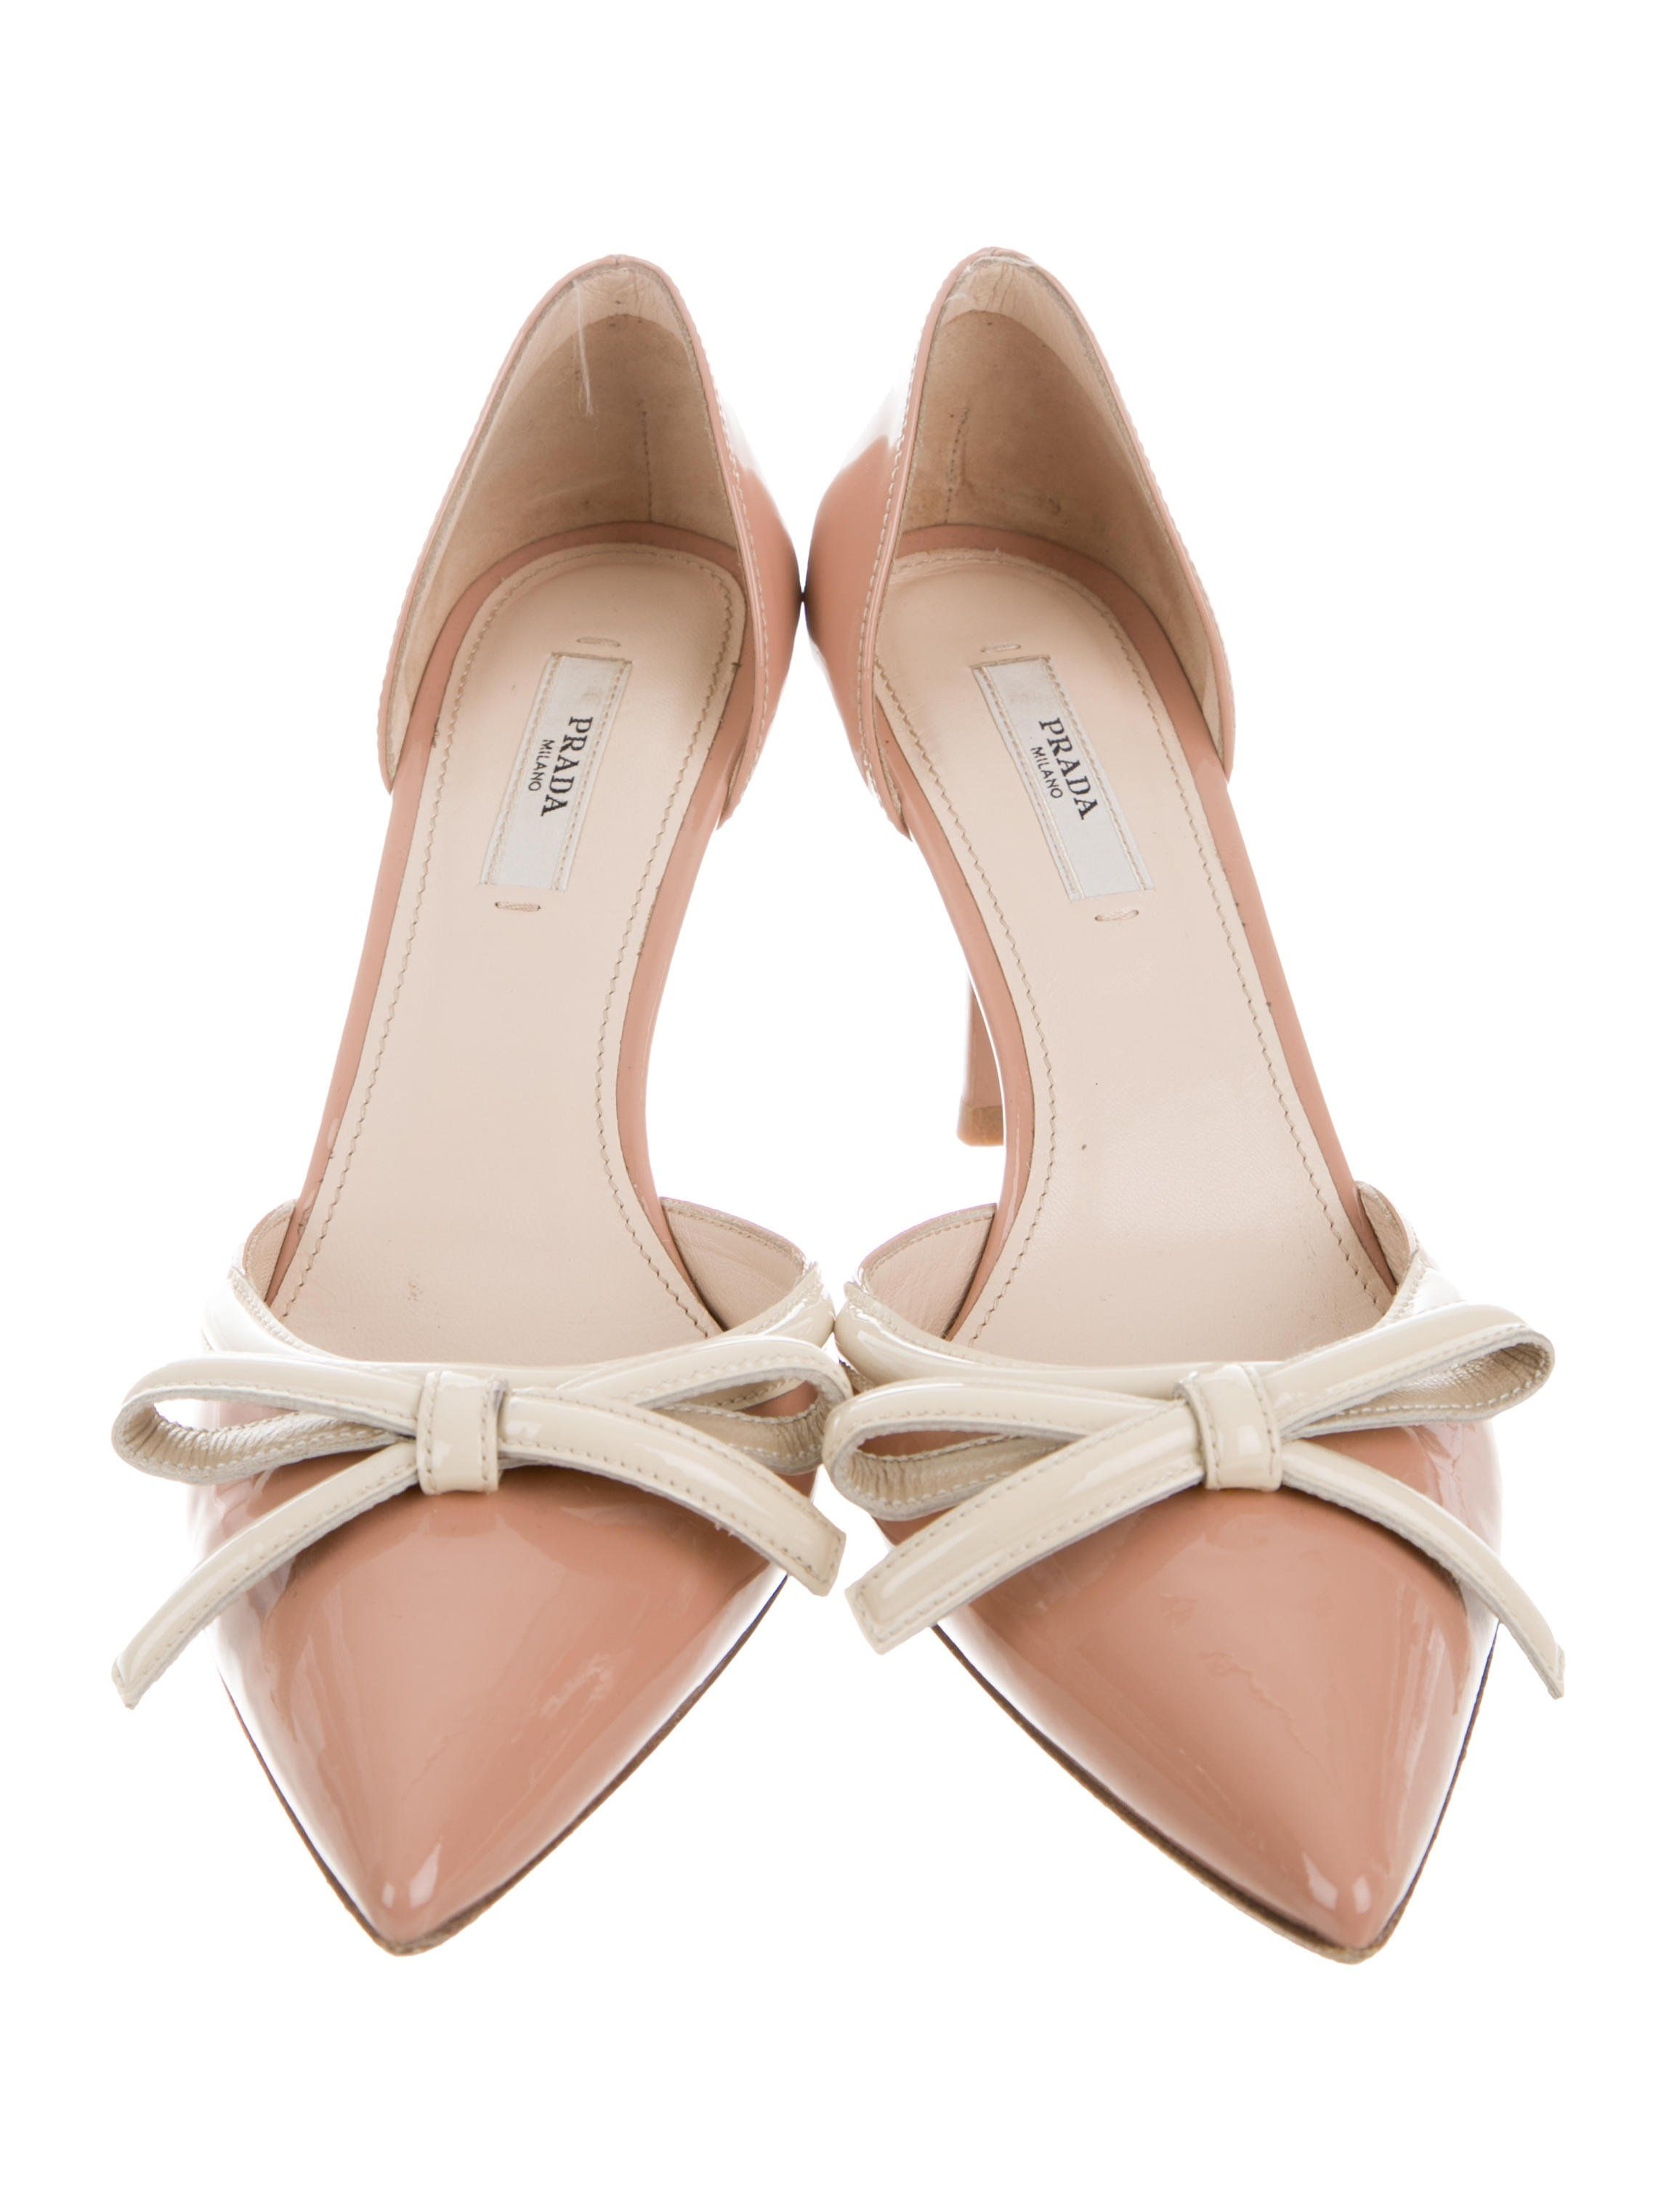 ee960a9ed623c Tan and beige patent leather Prada pointed-toe pumps with bow accents at  uppers and covered heels. Includes dust bag.